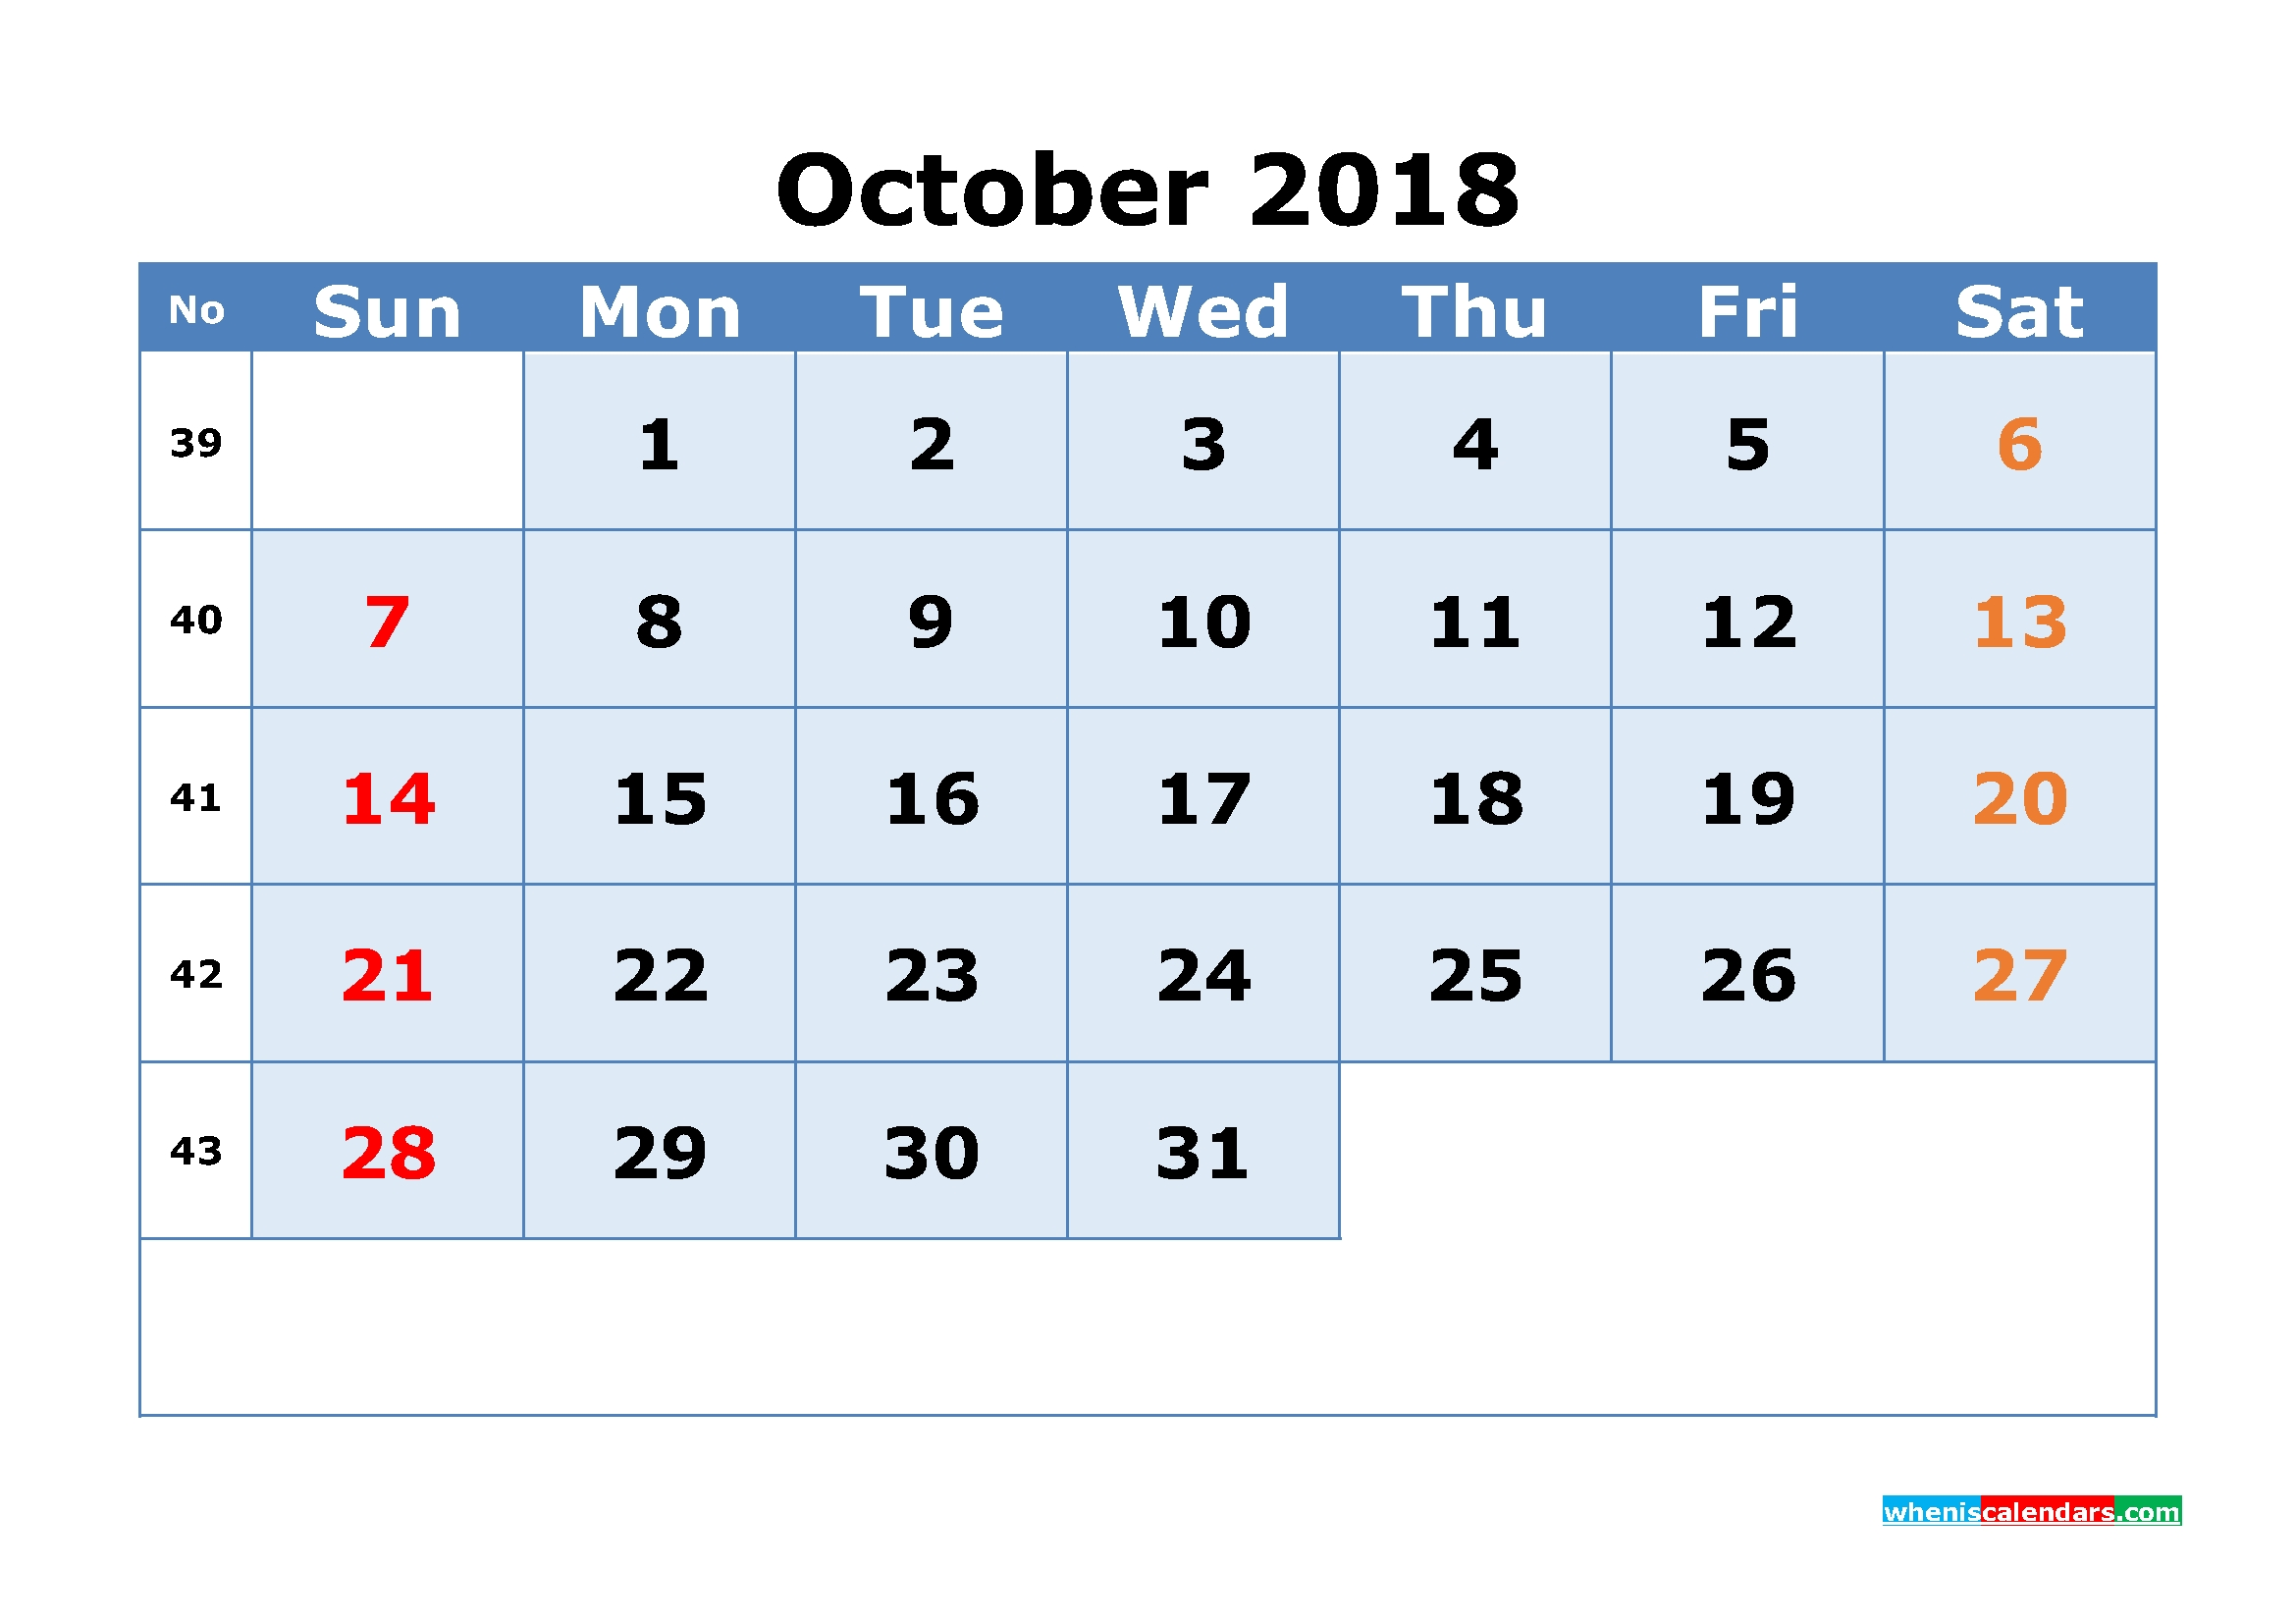 October 2018 Calendar With Week Numbers Printable 1 Month